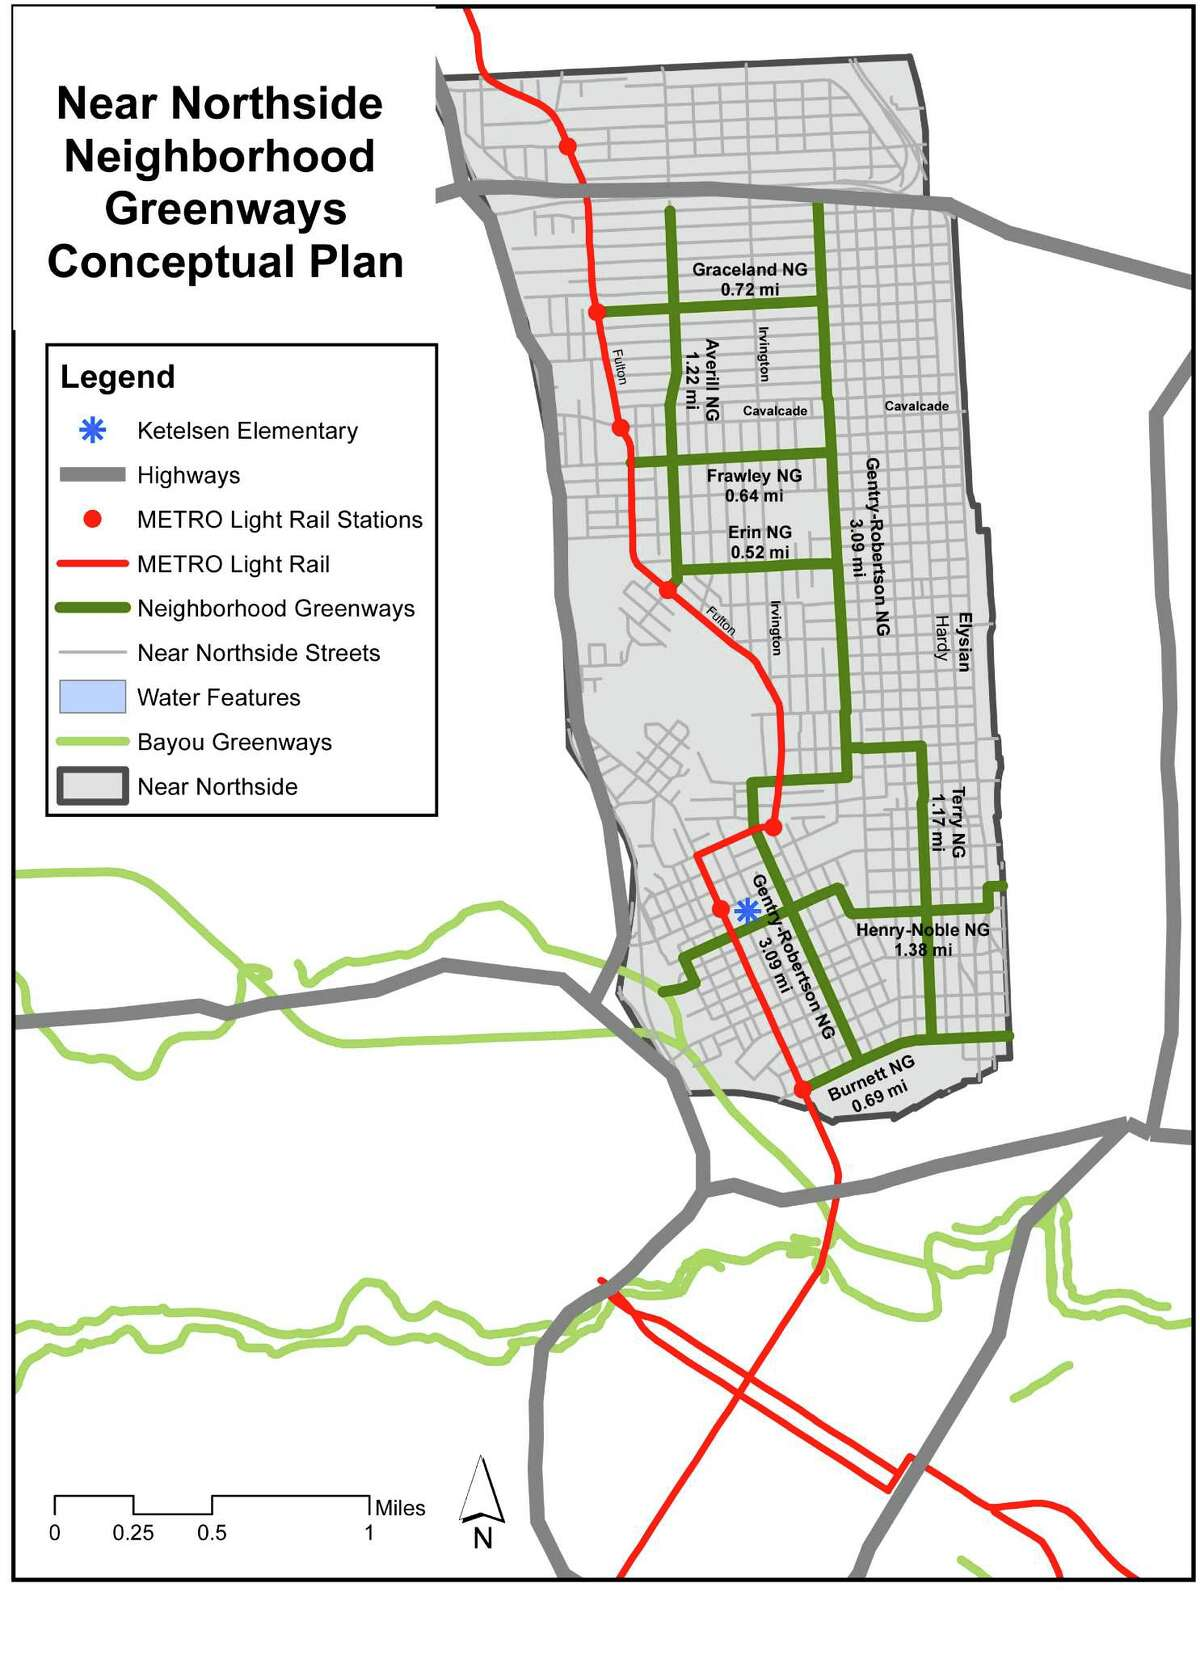 This conceptual map for a Neighborhood Greenways network for the Near Northside shows connections between the Bayou Greenways system, light rail stations, schools, and access to this network across the SuperNeighborhood.